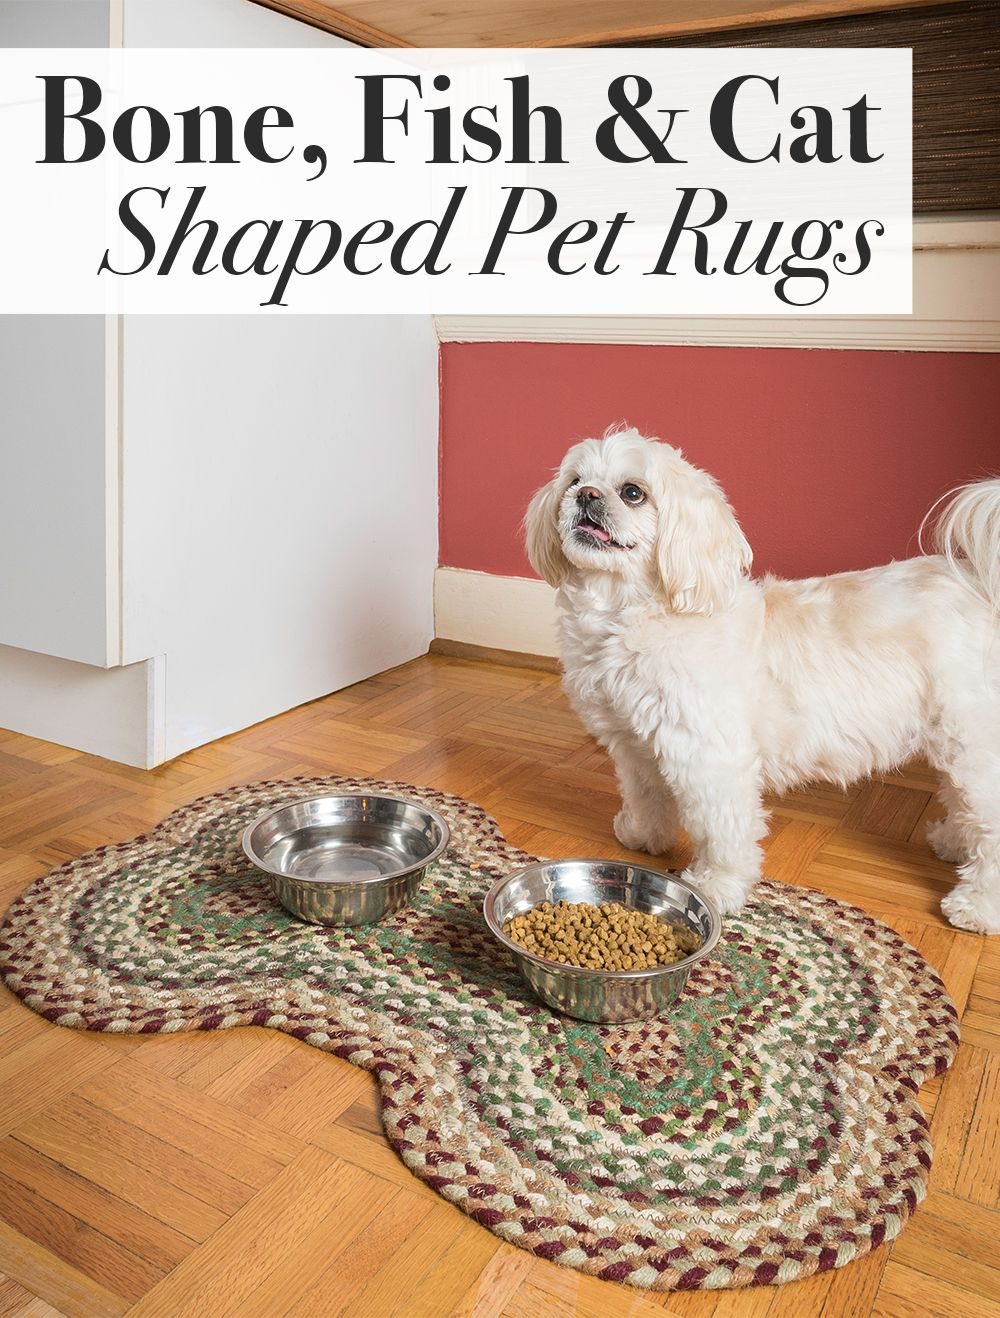 Braided Rugs In Fun Shapes Dog Bones Cats And Fish Shapes That